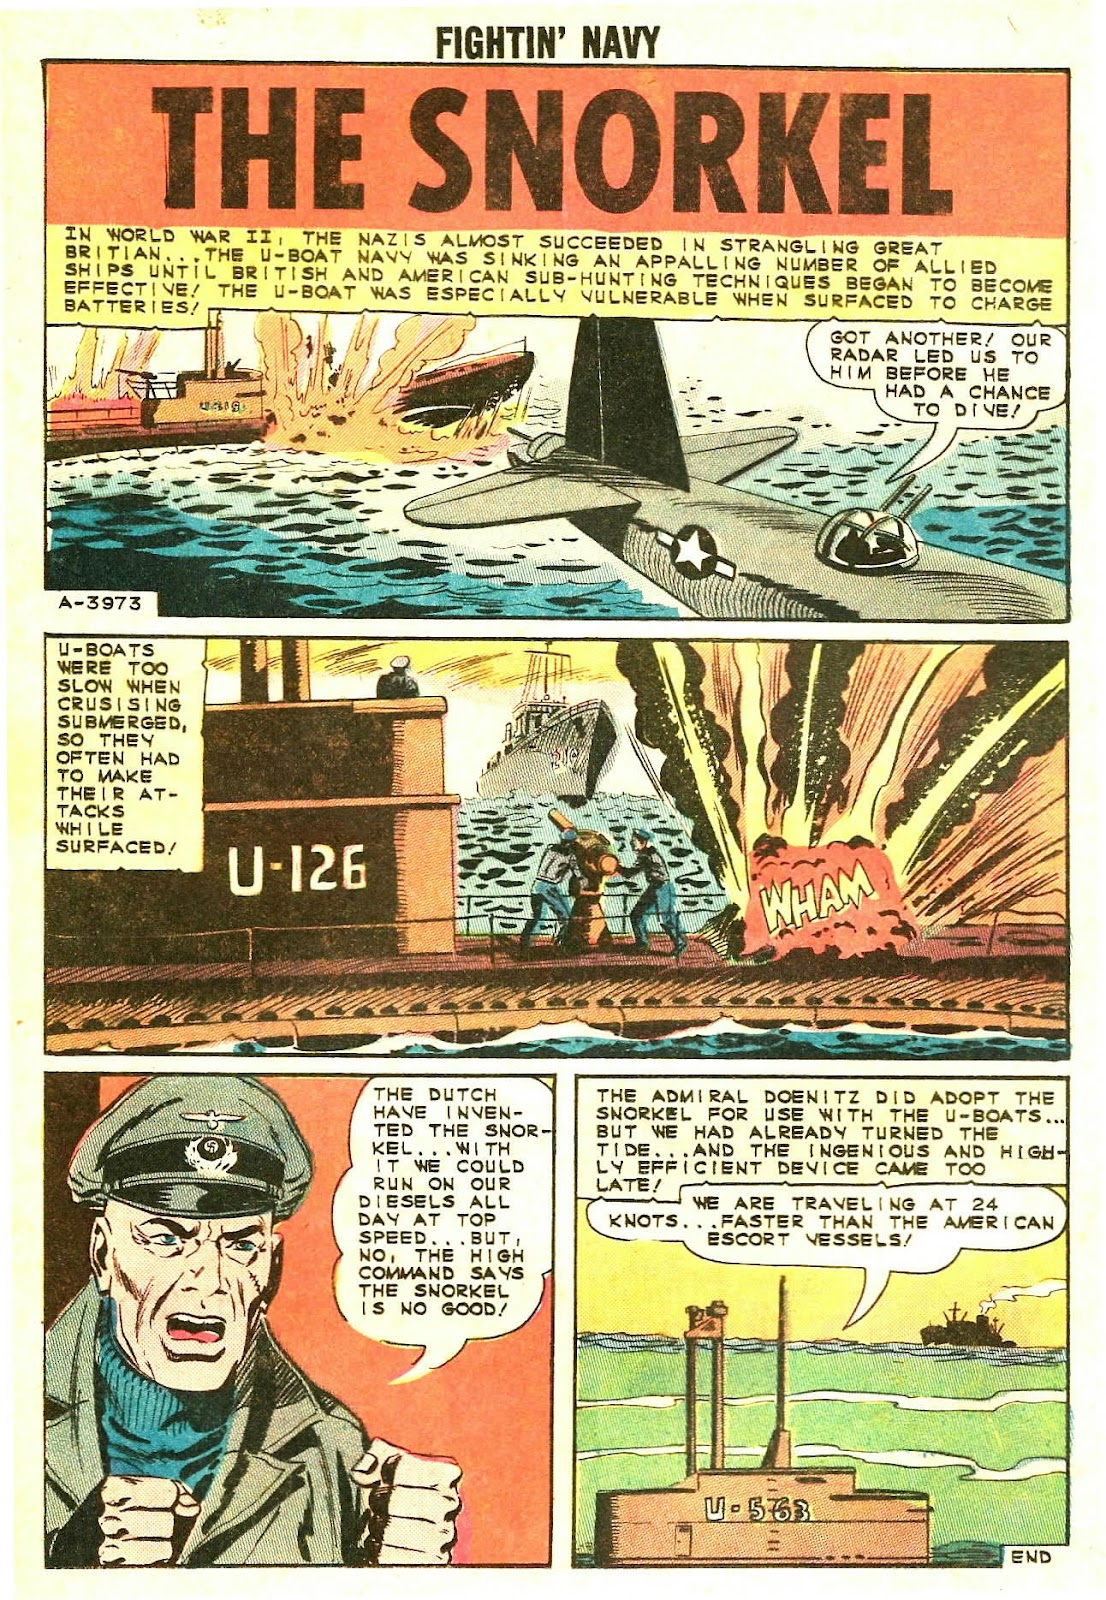 Read online Fightin' Navy comic -  Issue #118 - 12